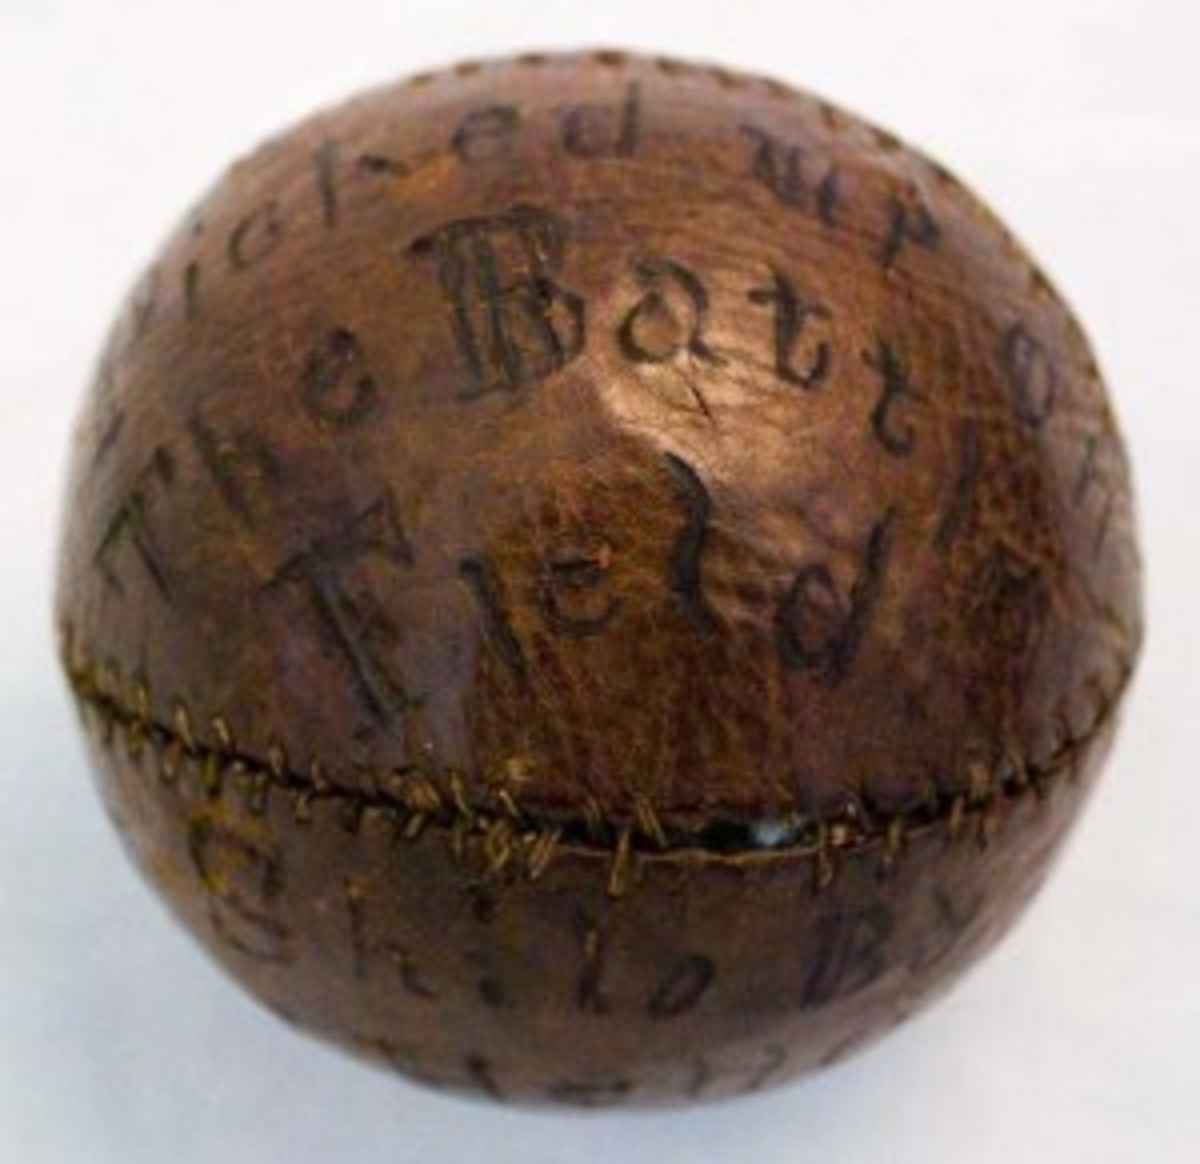 This baseball was found on the site of the Battle of Shiloh in 1862 during the Civil War.